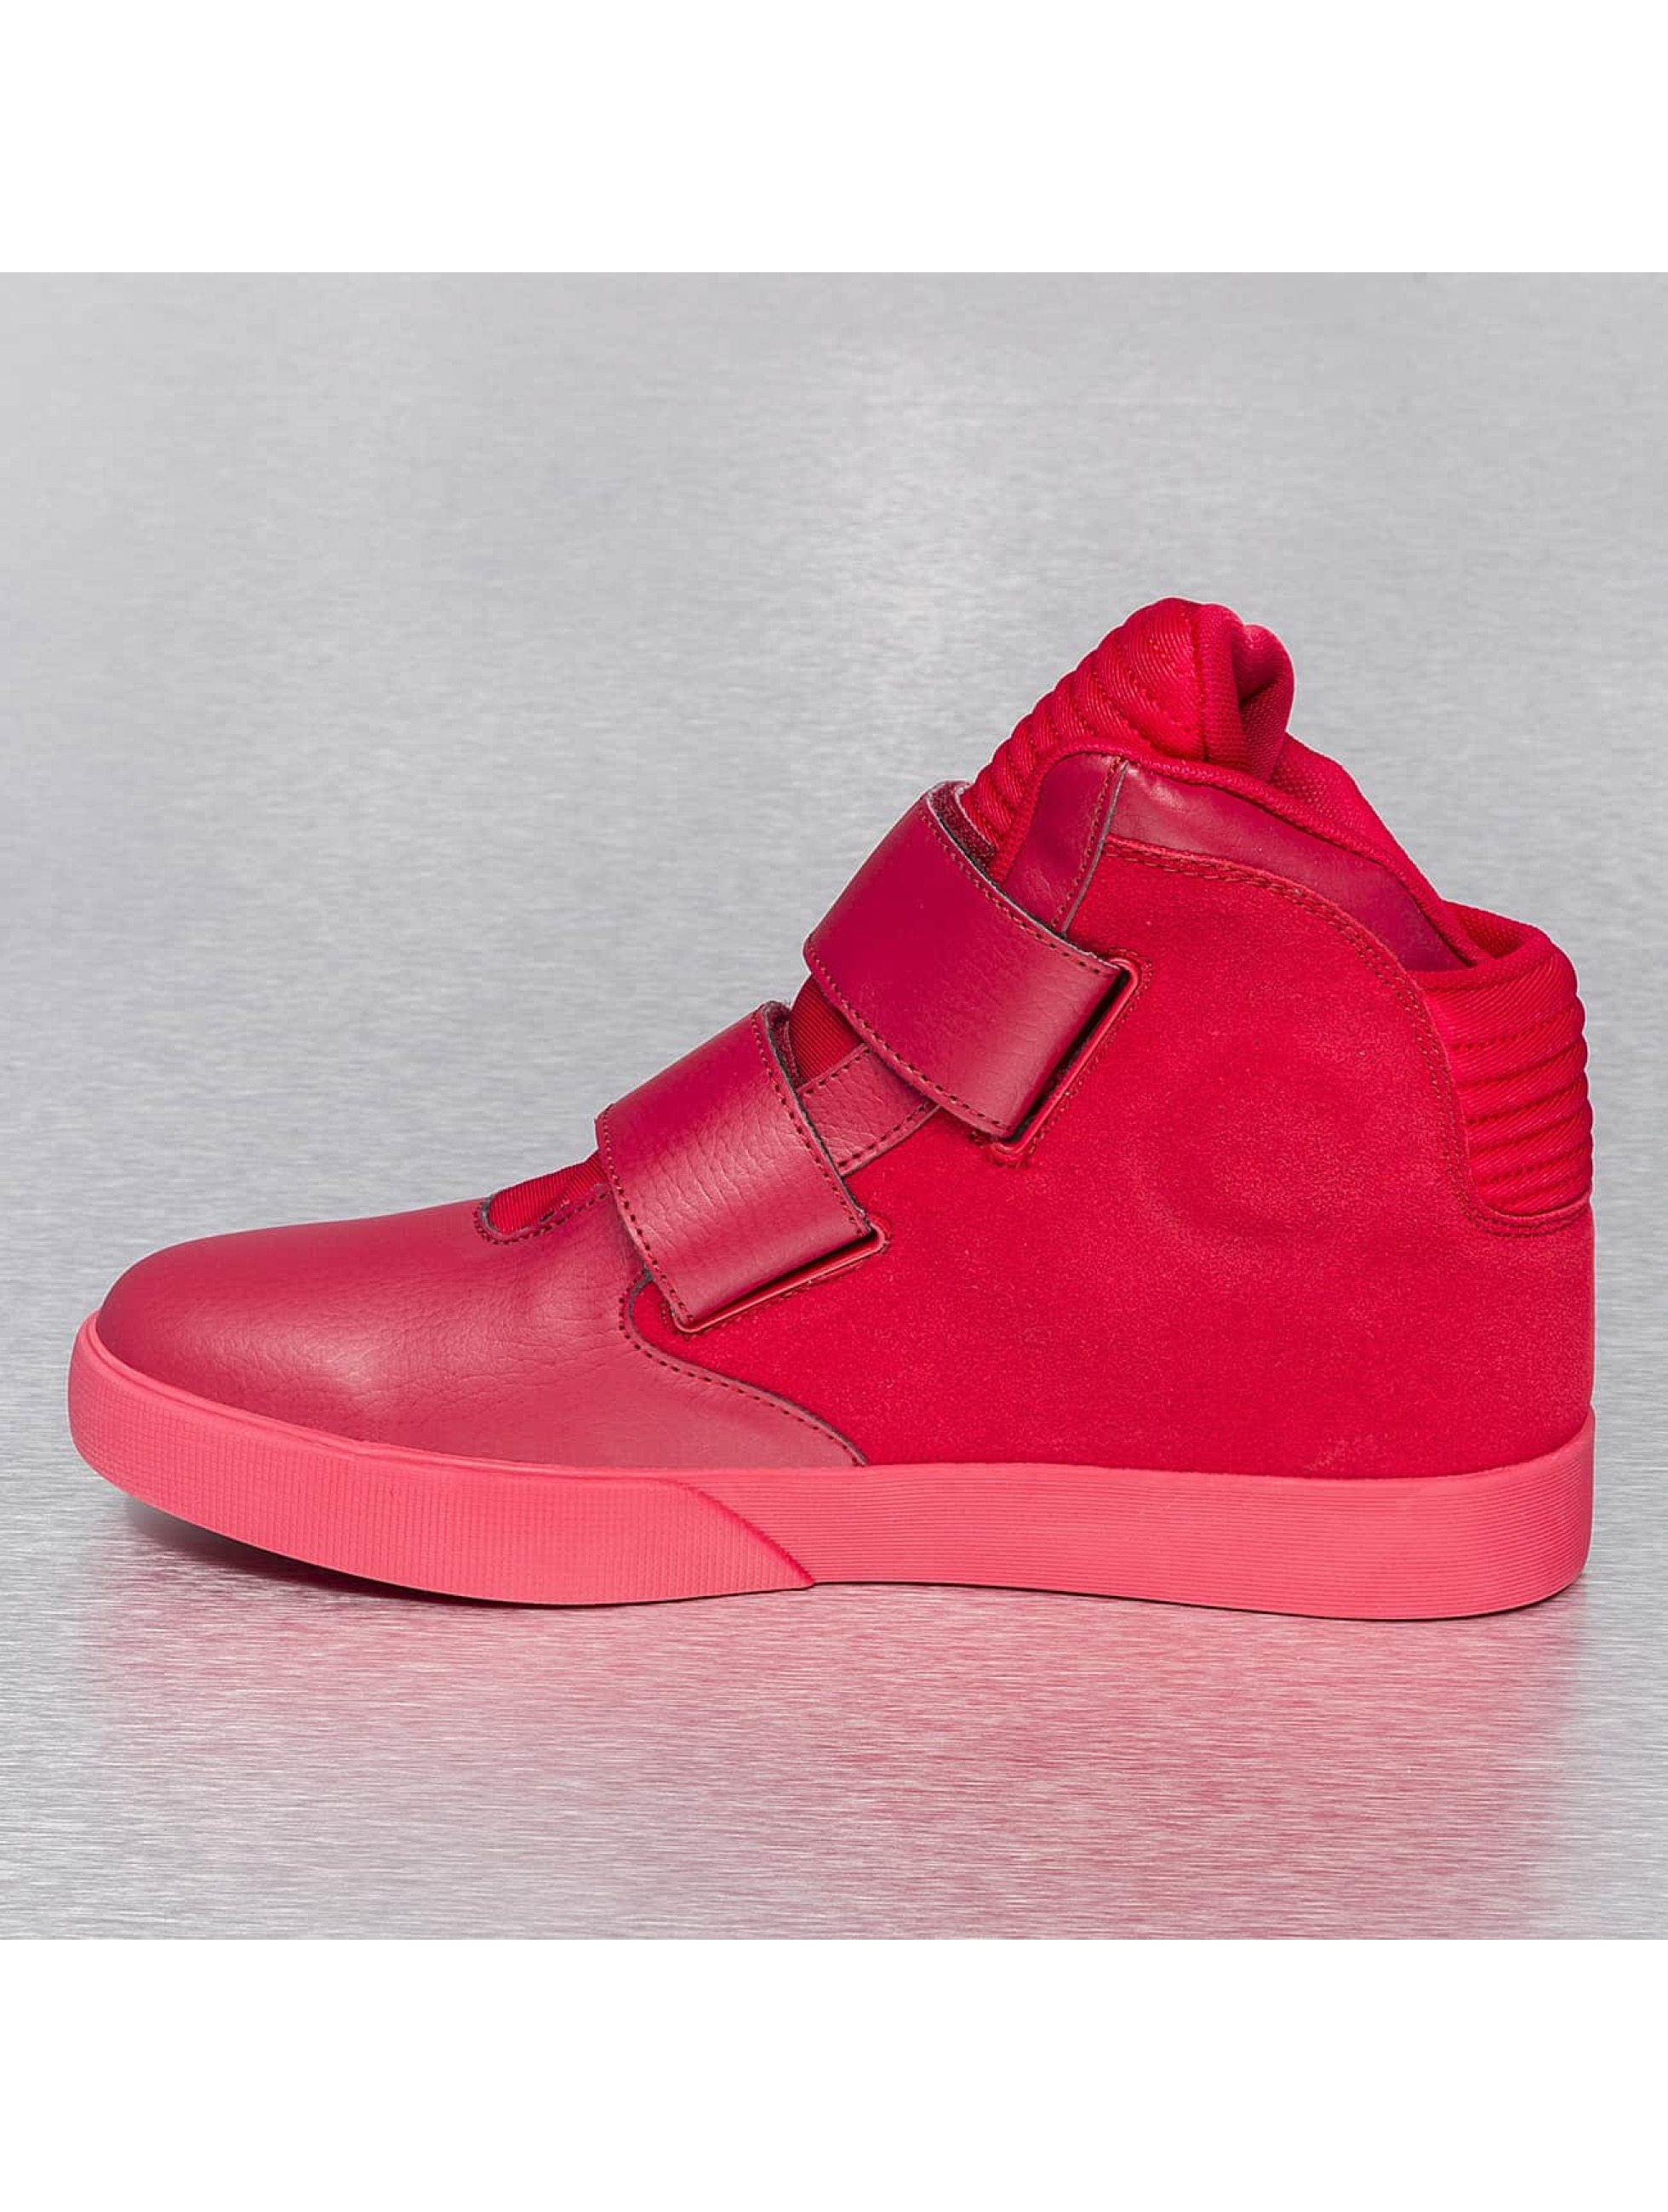 New York Style Sneakers Big Red red